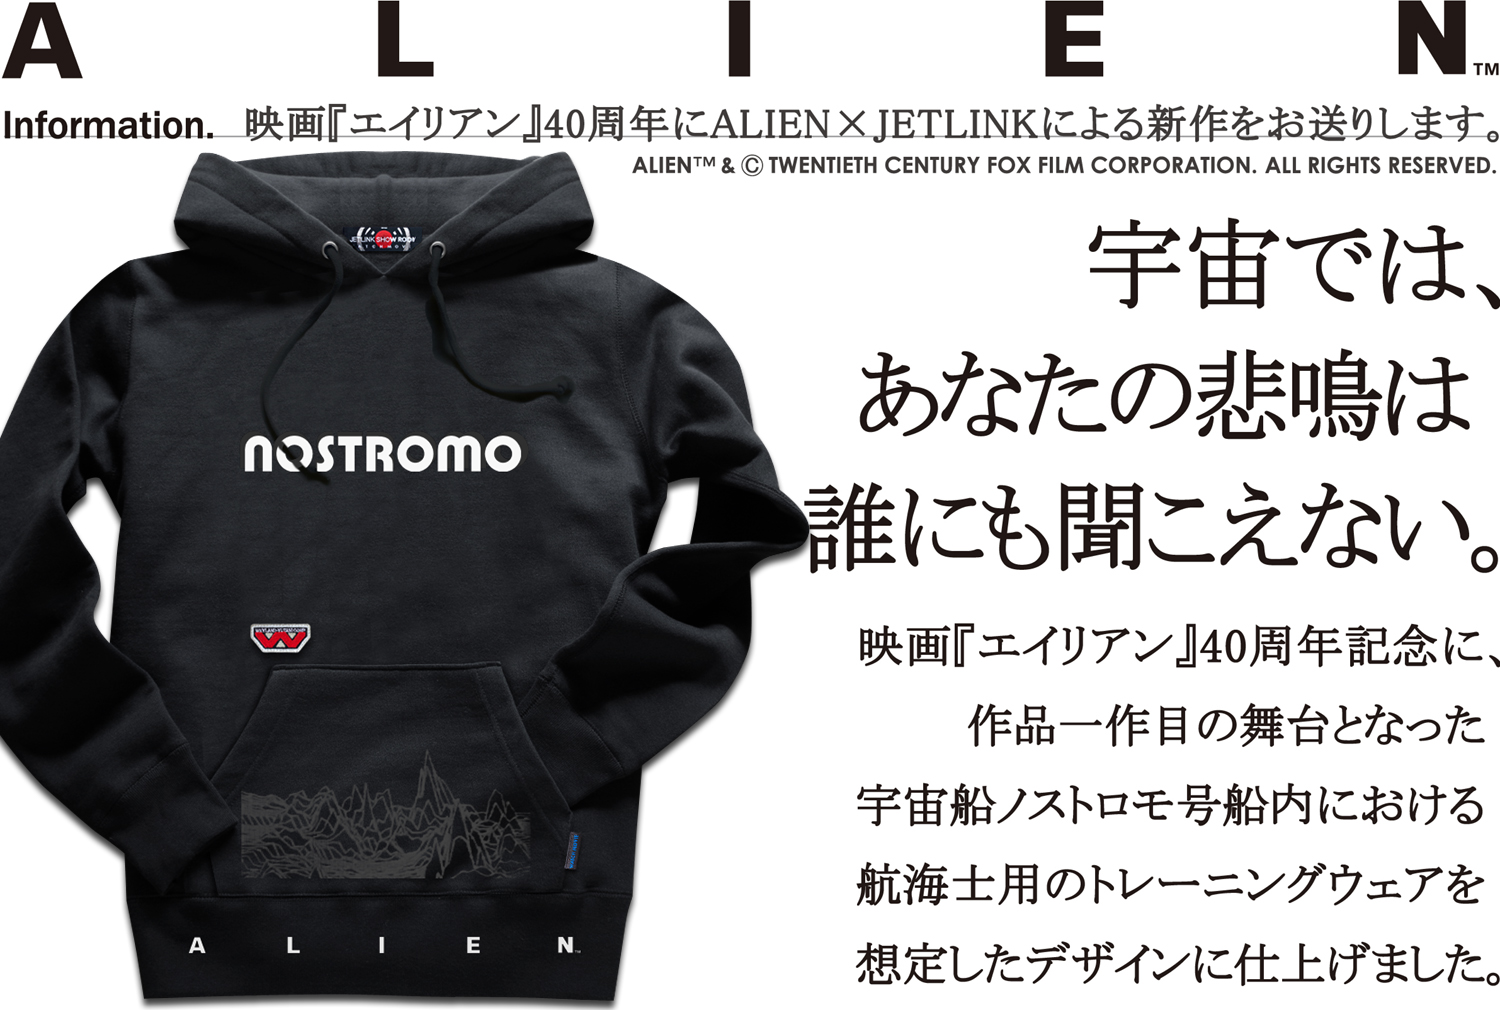 映画『エイリアン』ALIEN THE NOSTROMO LV-426 HOODY